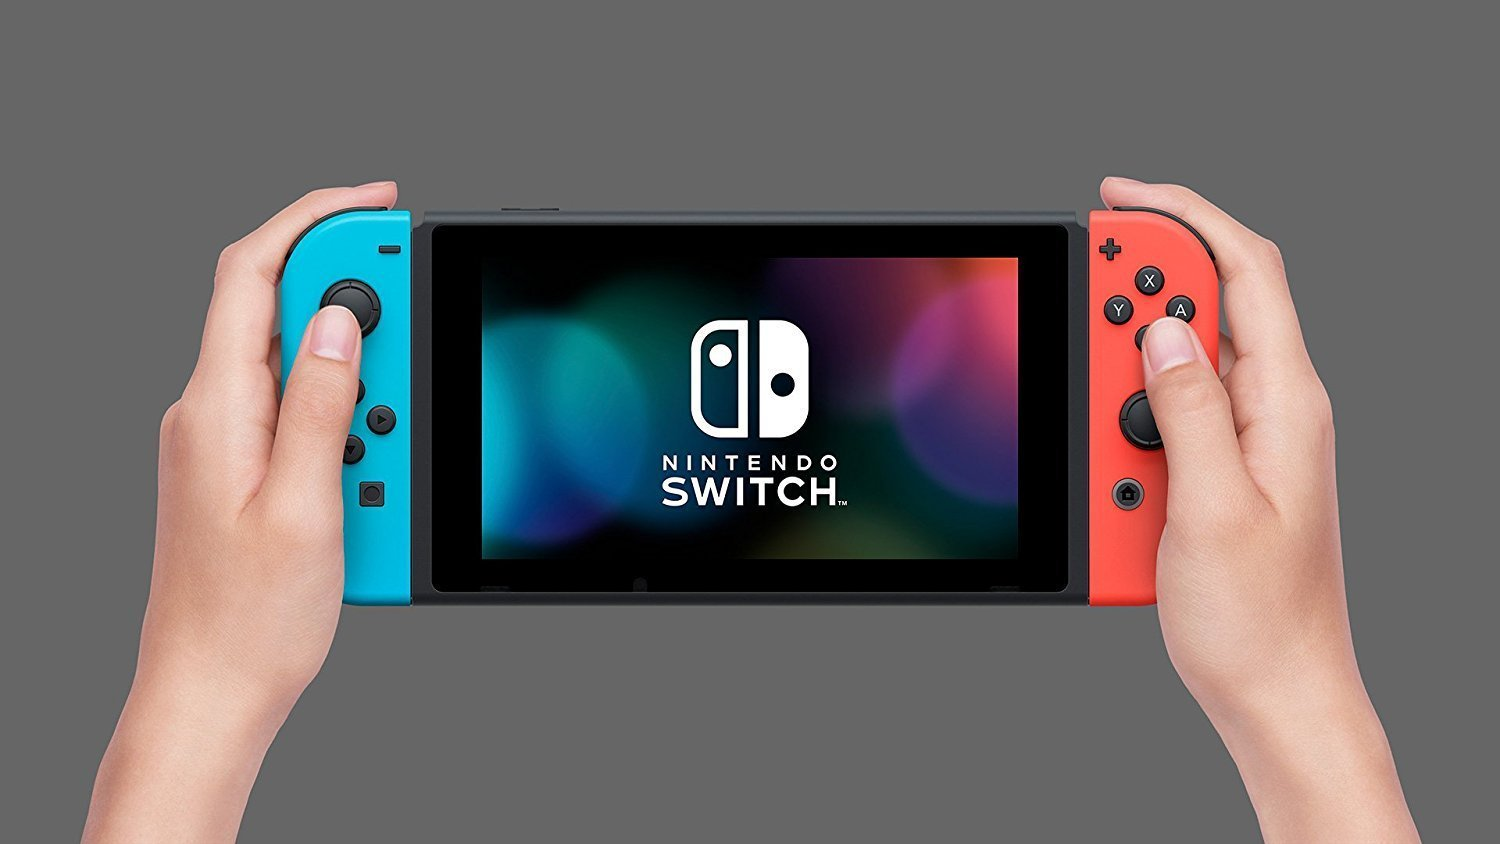 5 Things To Know About Buying A Nintendo Switch For Your Kids